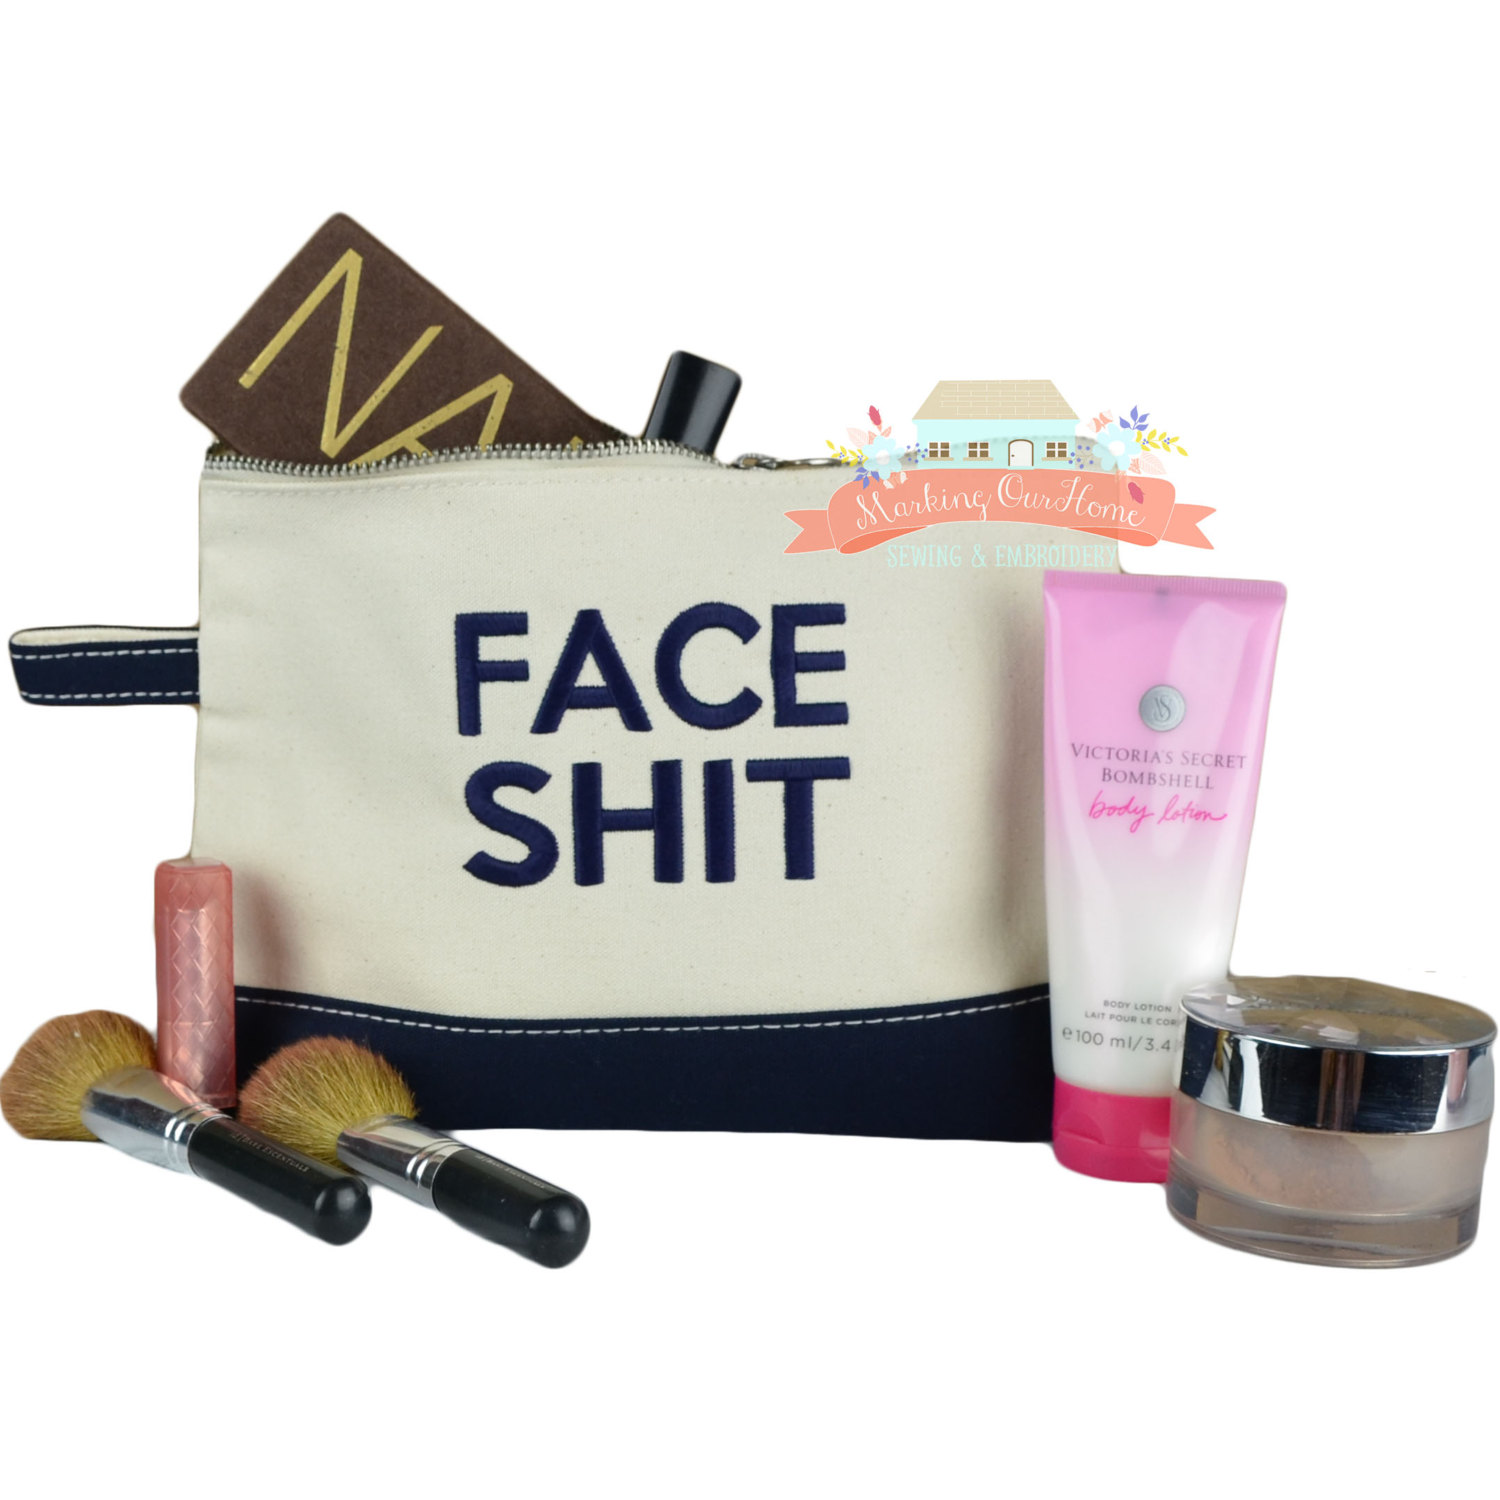 FACE SHIT bag, Face Shit Makeup Bag, Cosmetic Case, Embroidered - Navy Block